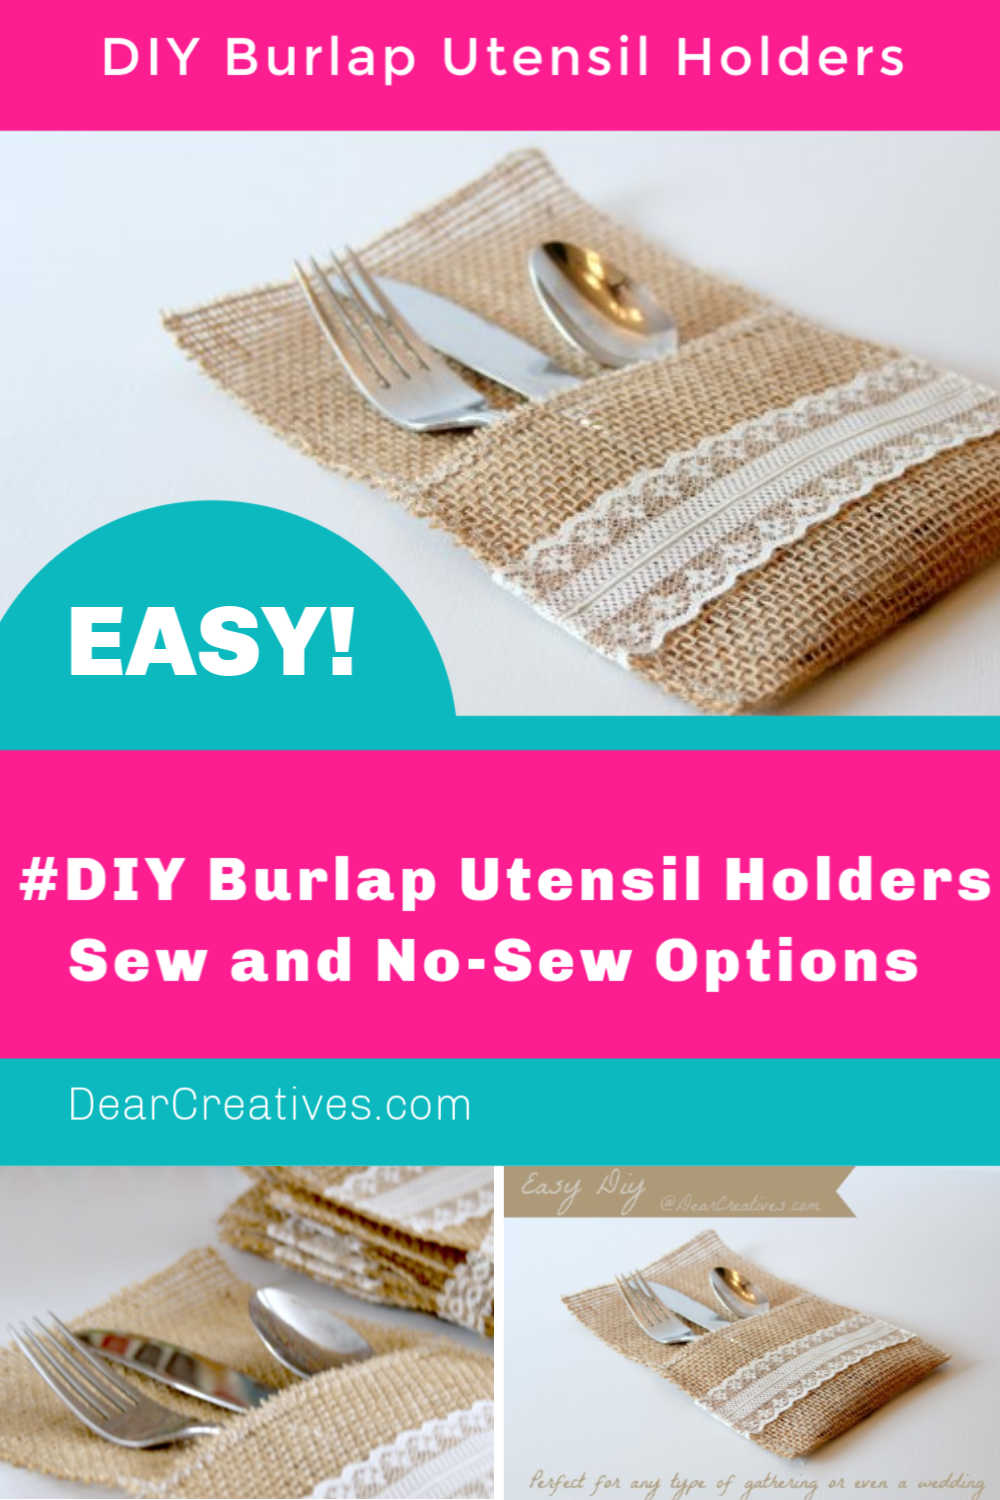 DIY Burlap Utensil Holders – Sew and No-Sew Options